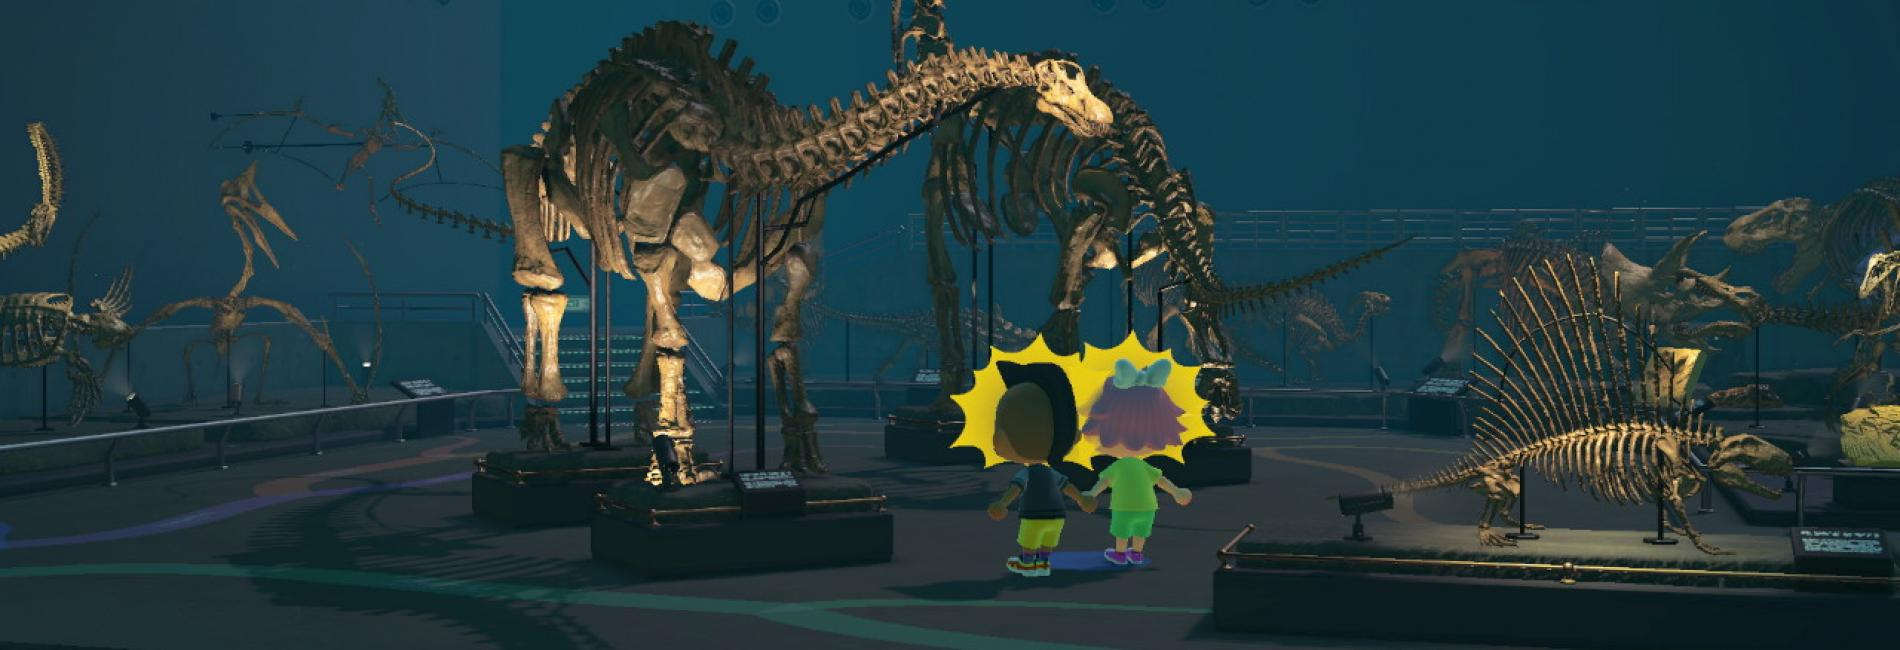 Exploring the dinosaurs in Animal Crossing game